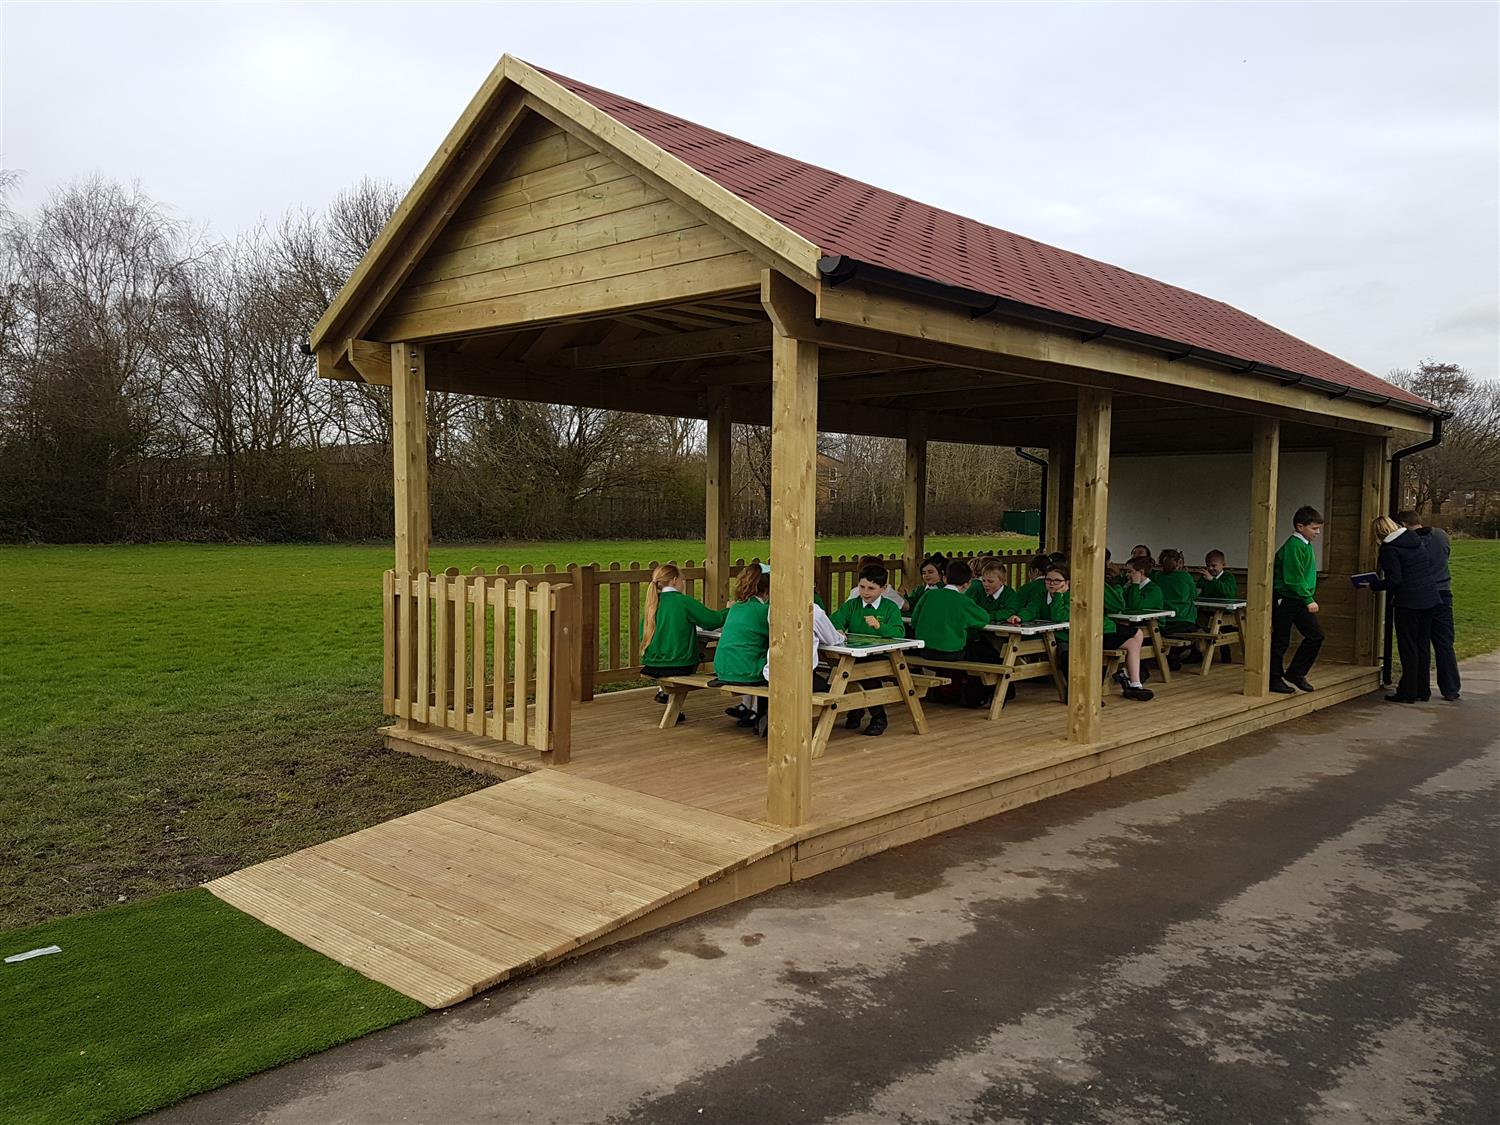 Locking Stump s Play Equipment & Outdoor Classroom